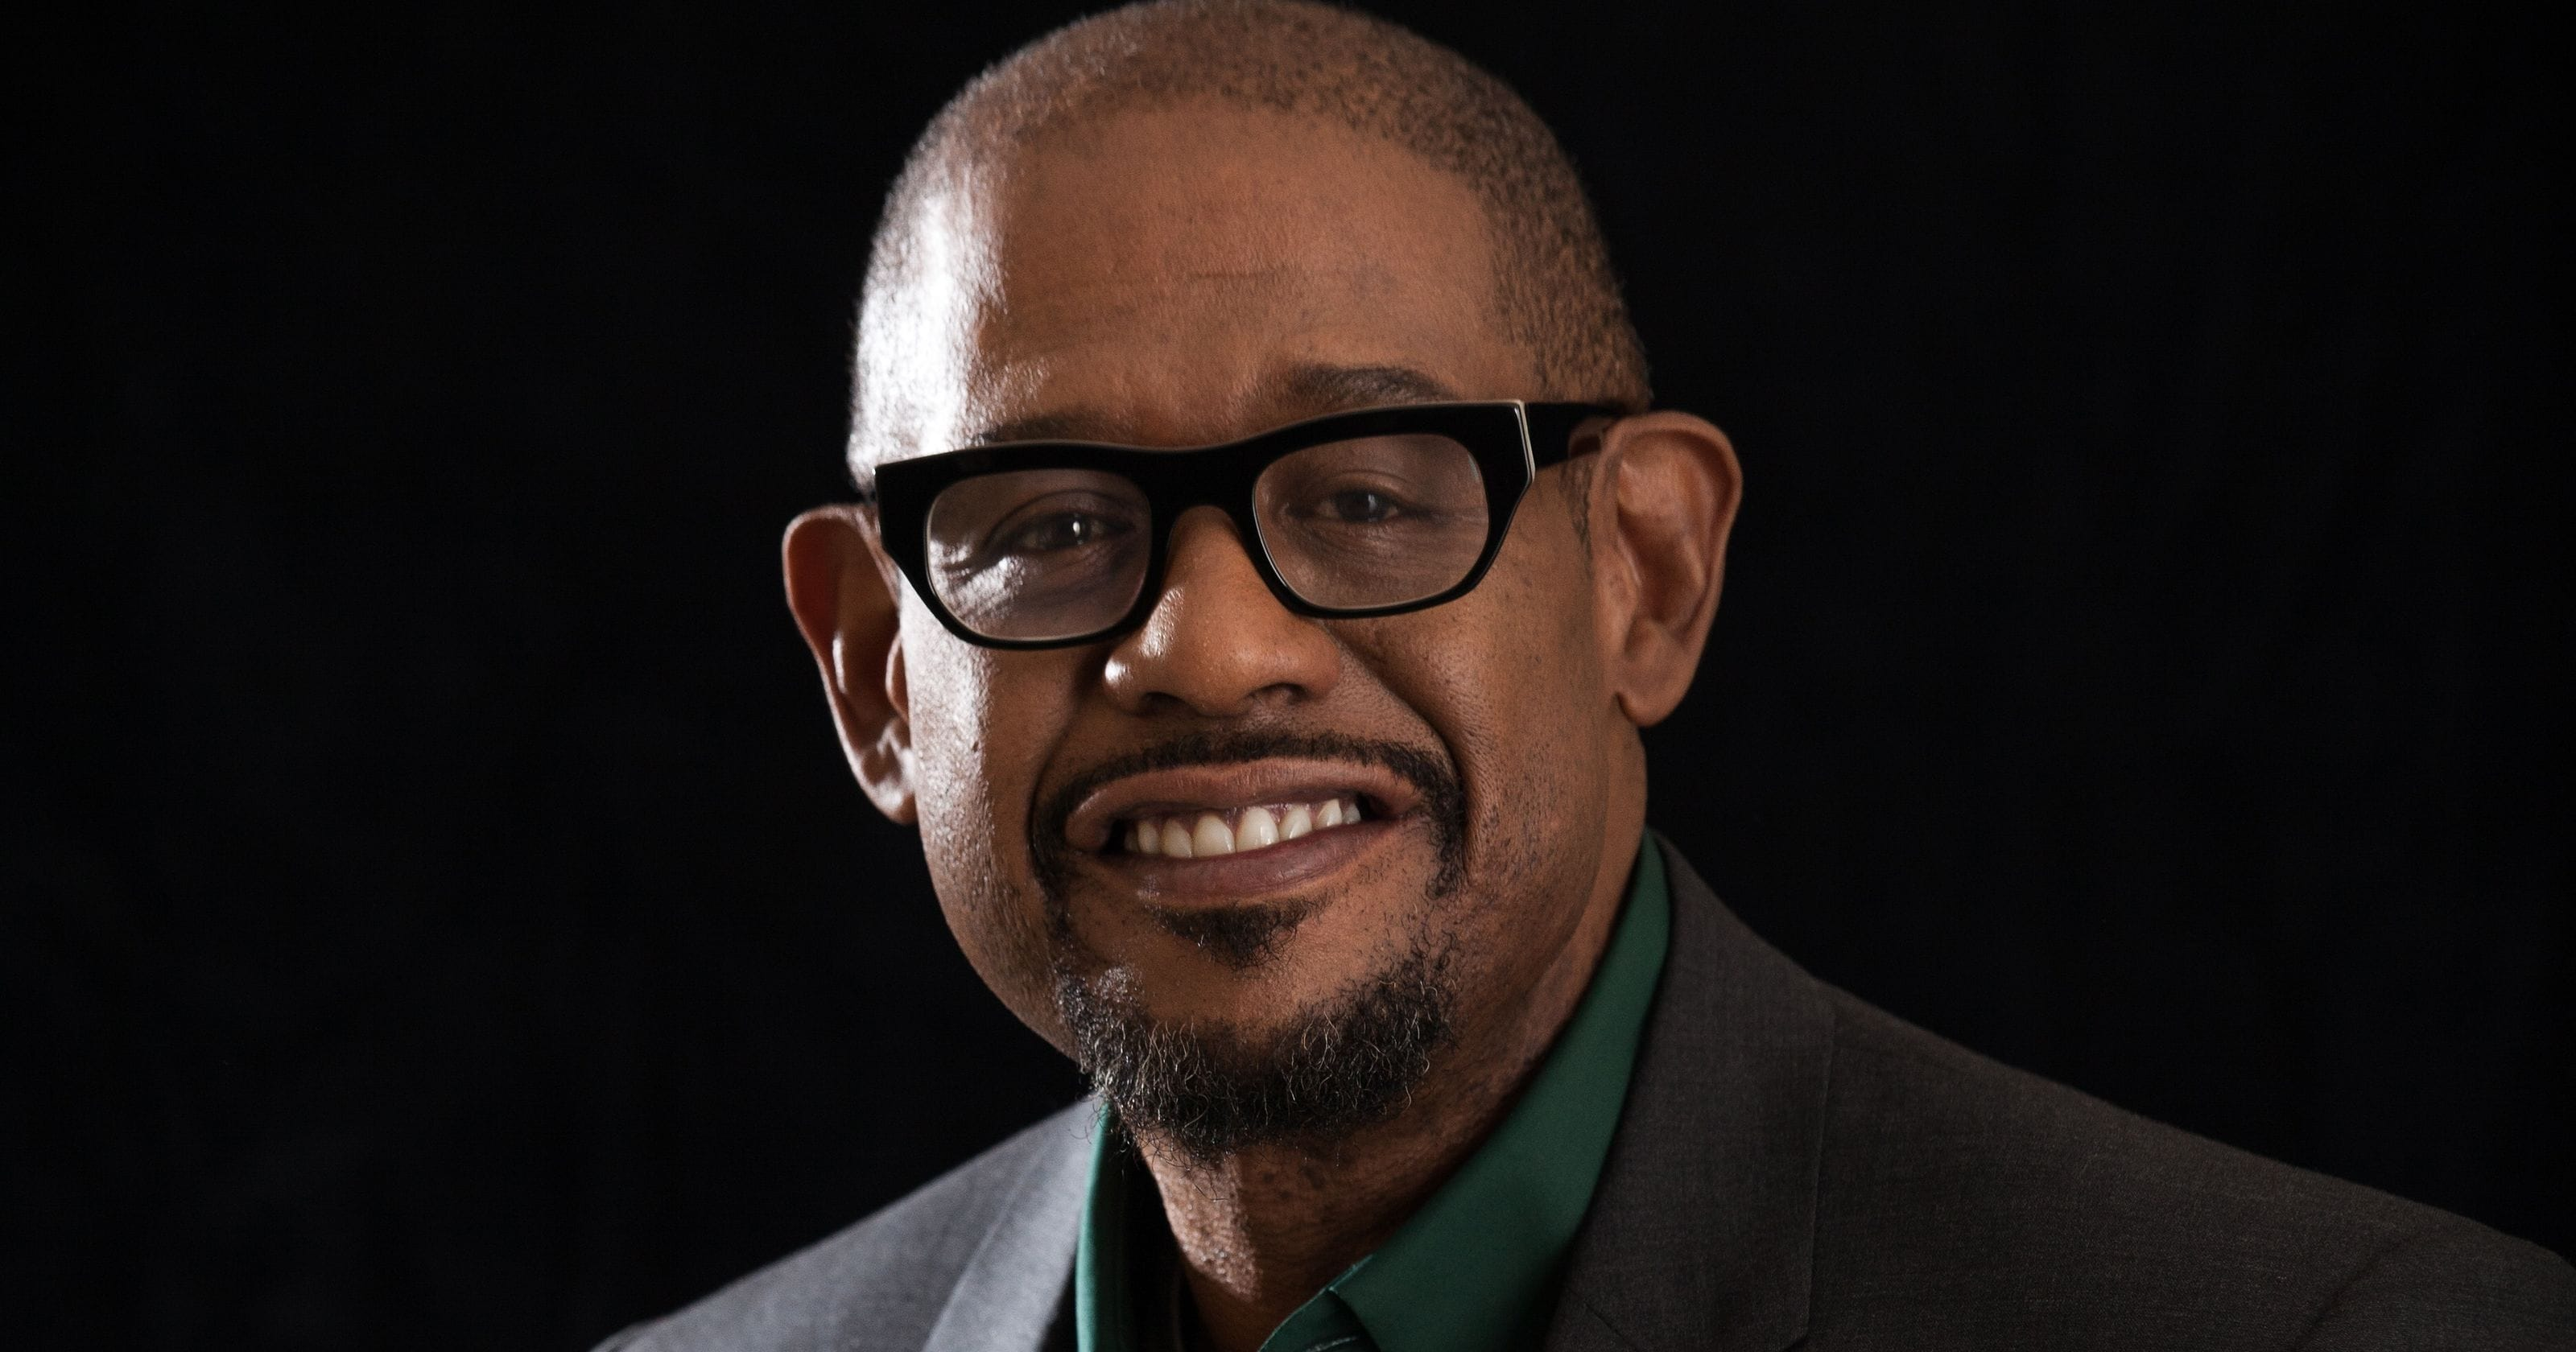 Forest Whitaker HD Wallpapers | 7wallpapers.net